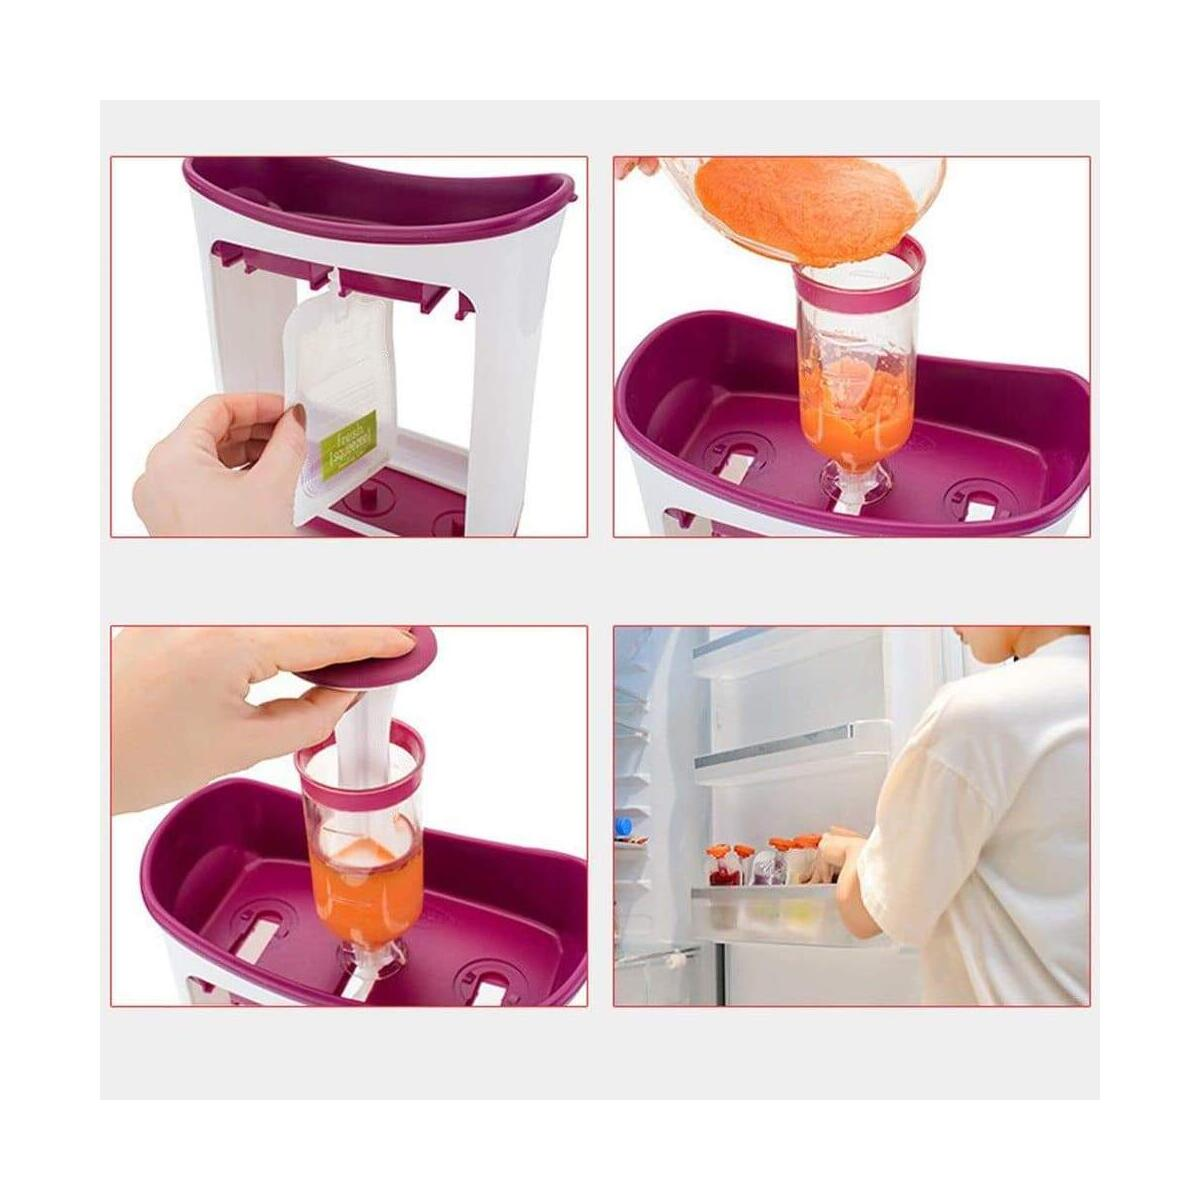 Easy to Use Squeeze Baby Food Maker Station Feeding Kit